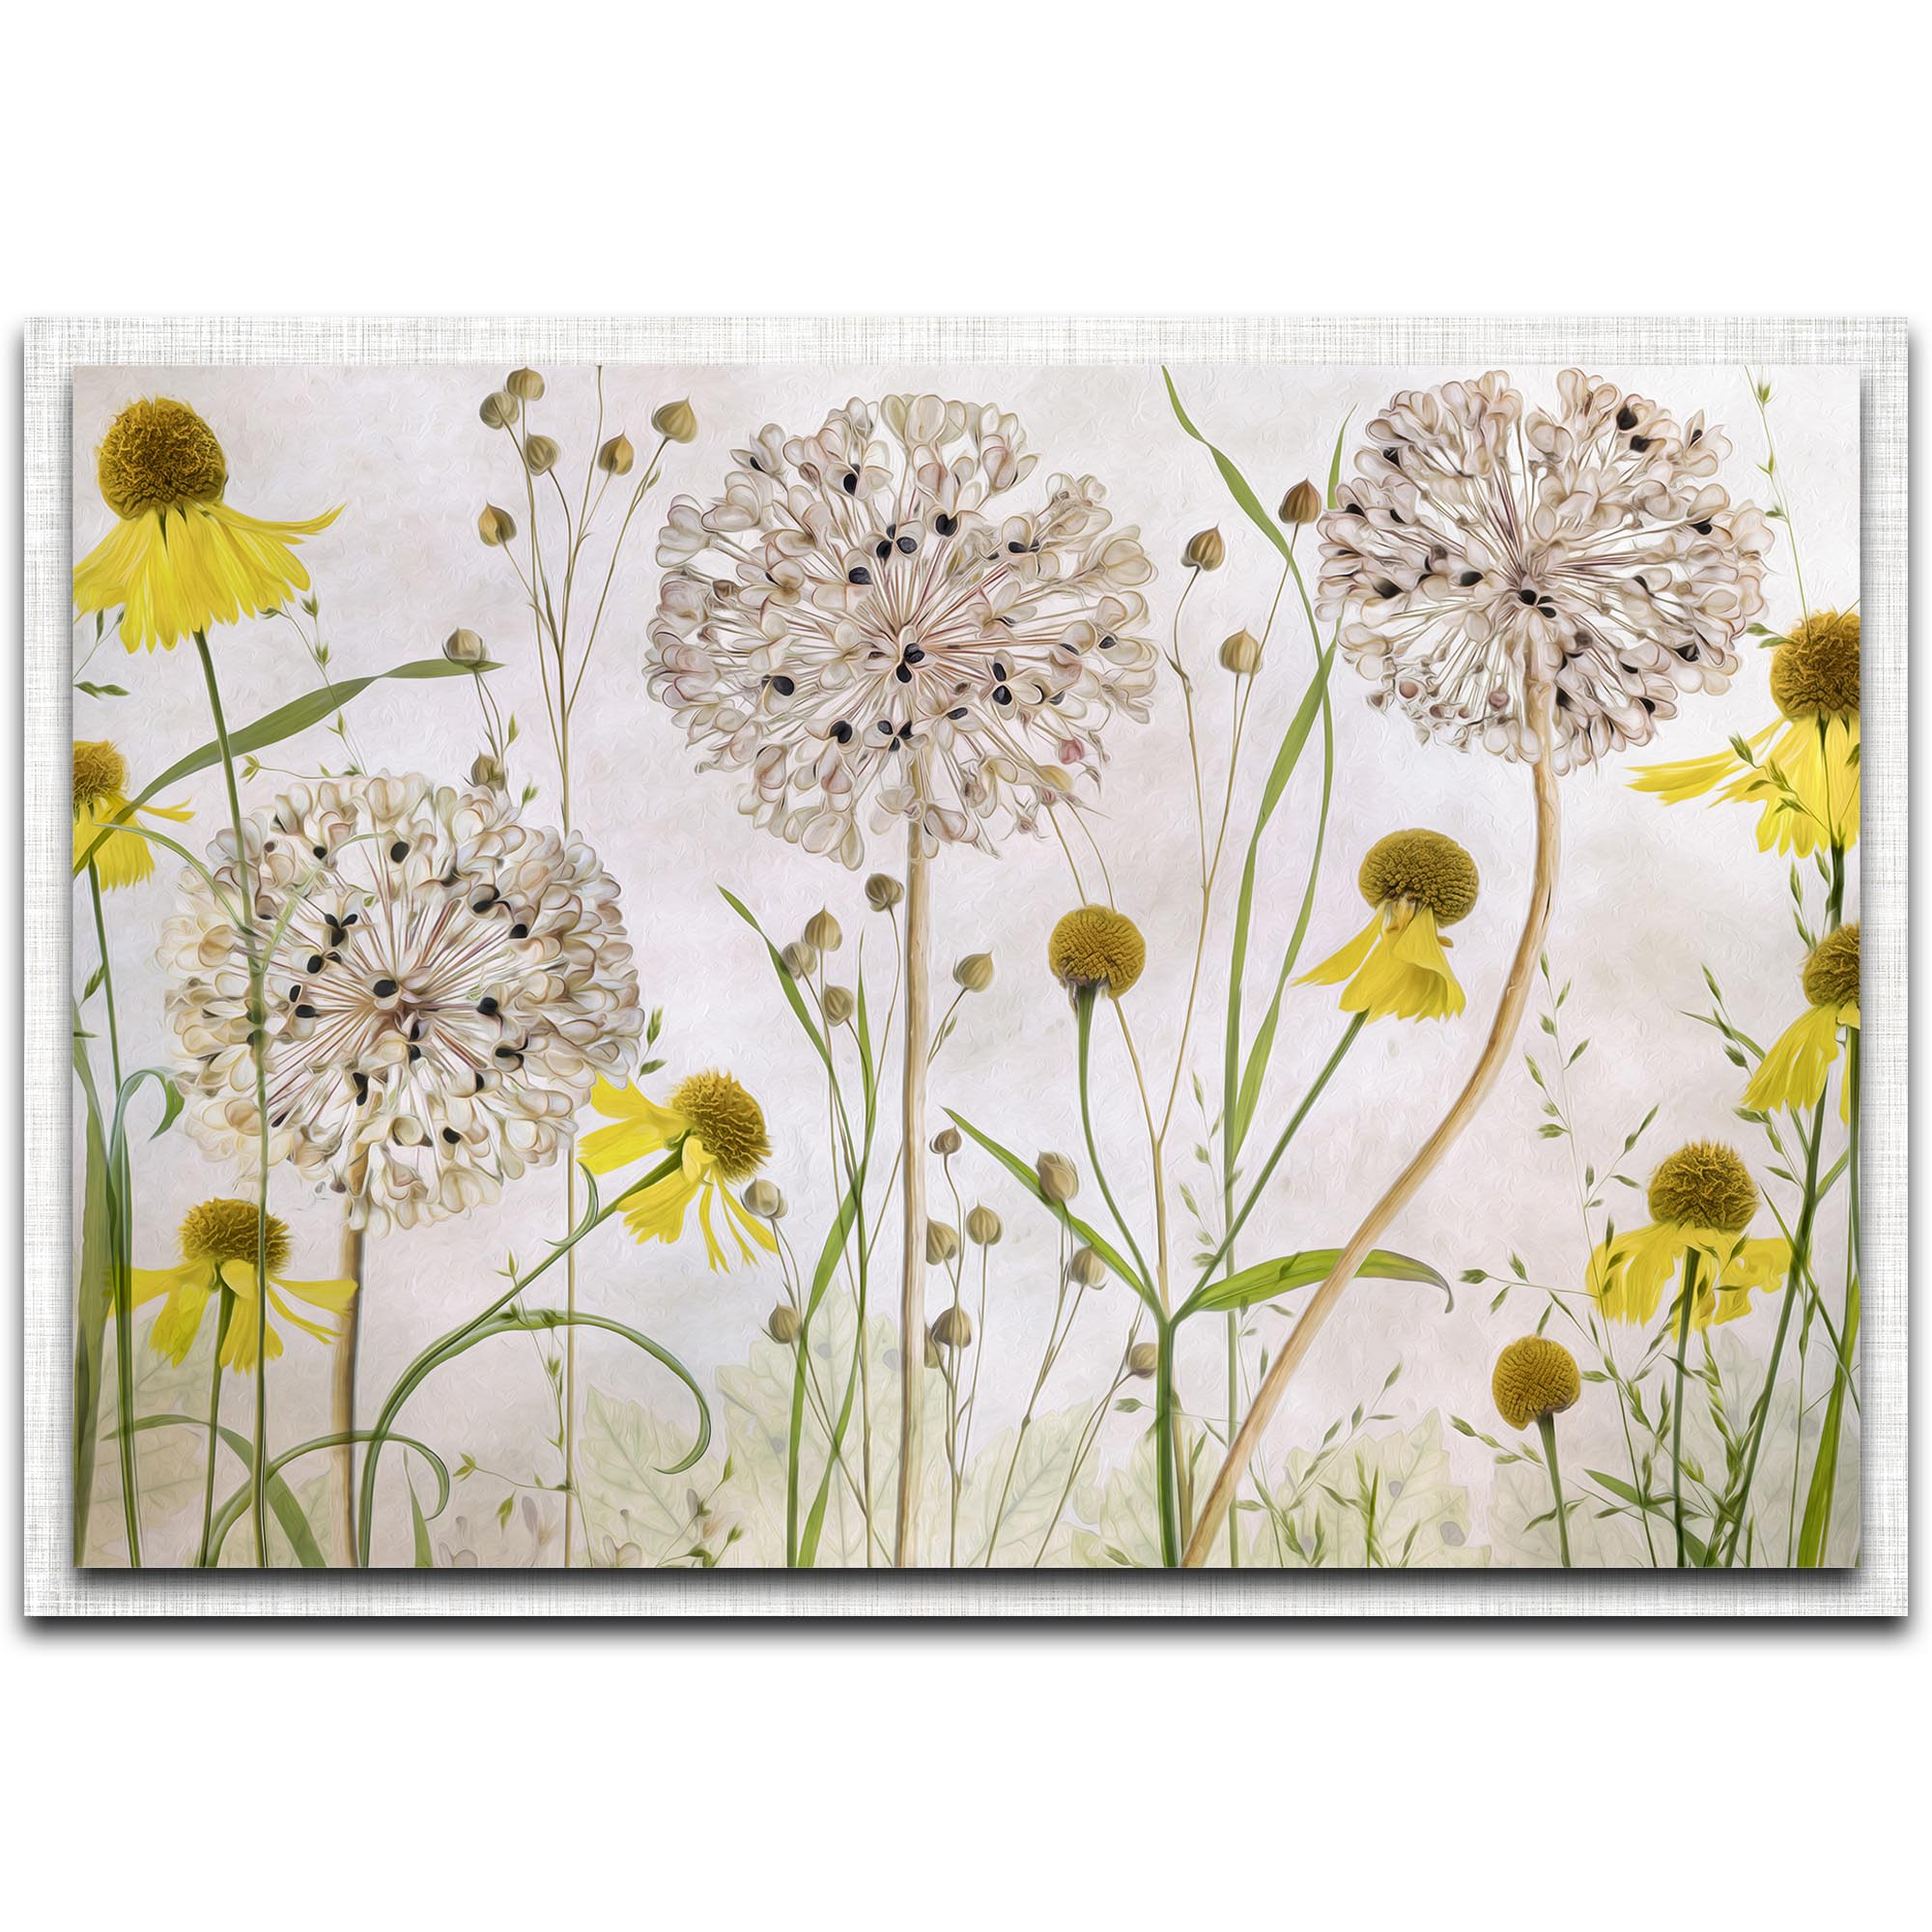 Metal Art Studio Alliums And Heleniums By Mandy Disher Modern Farmhouse Floral On Metal X1092592